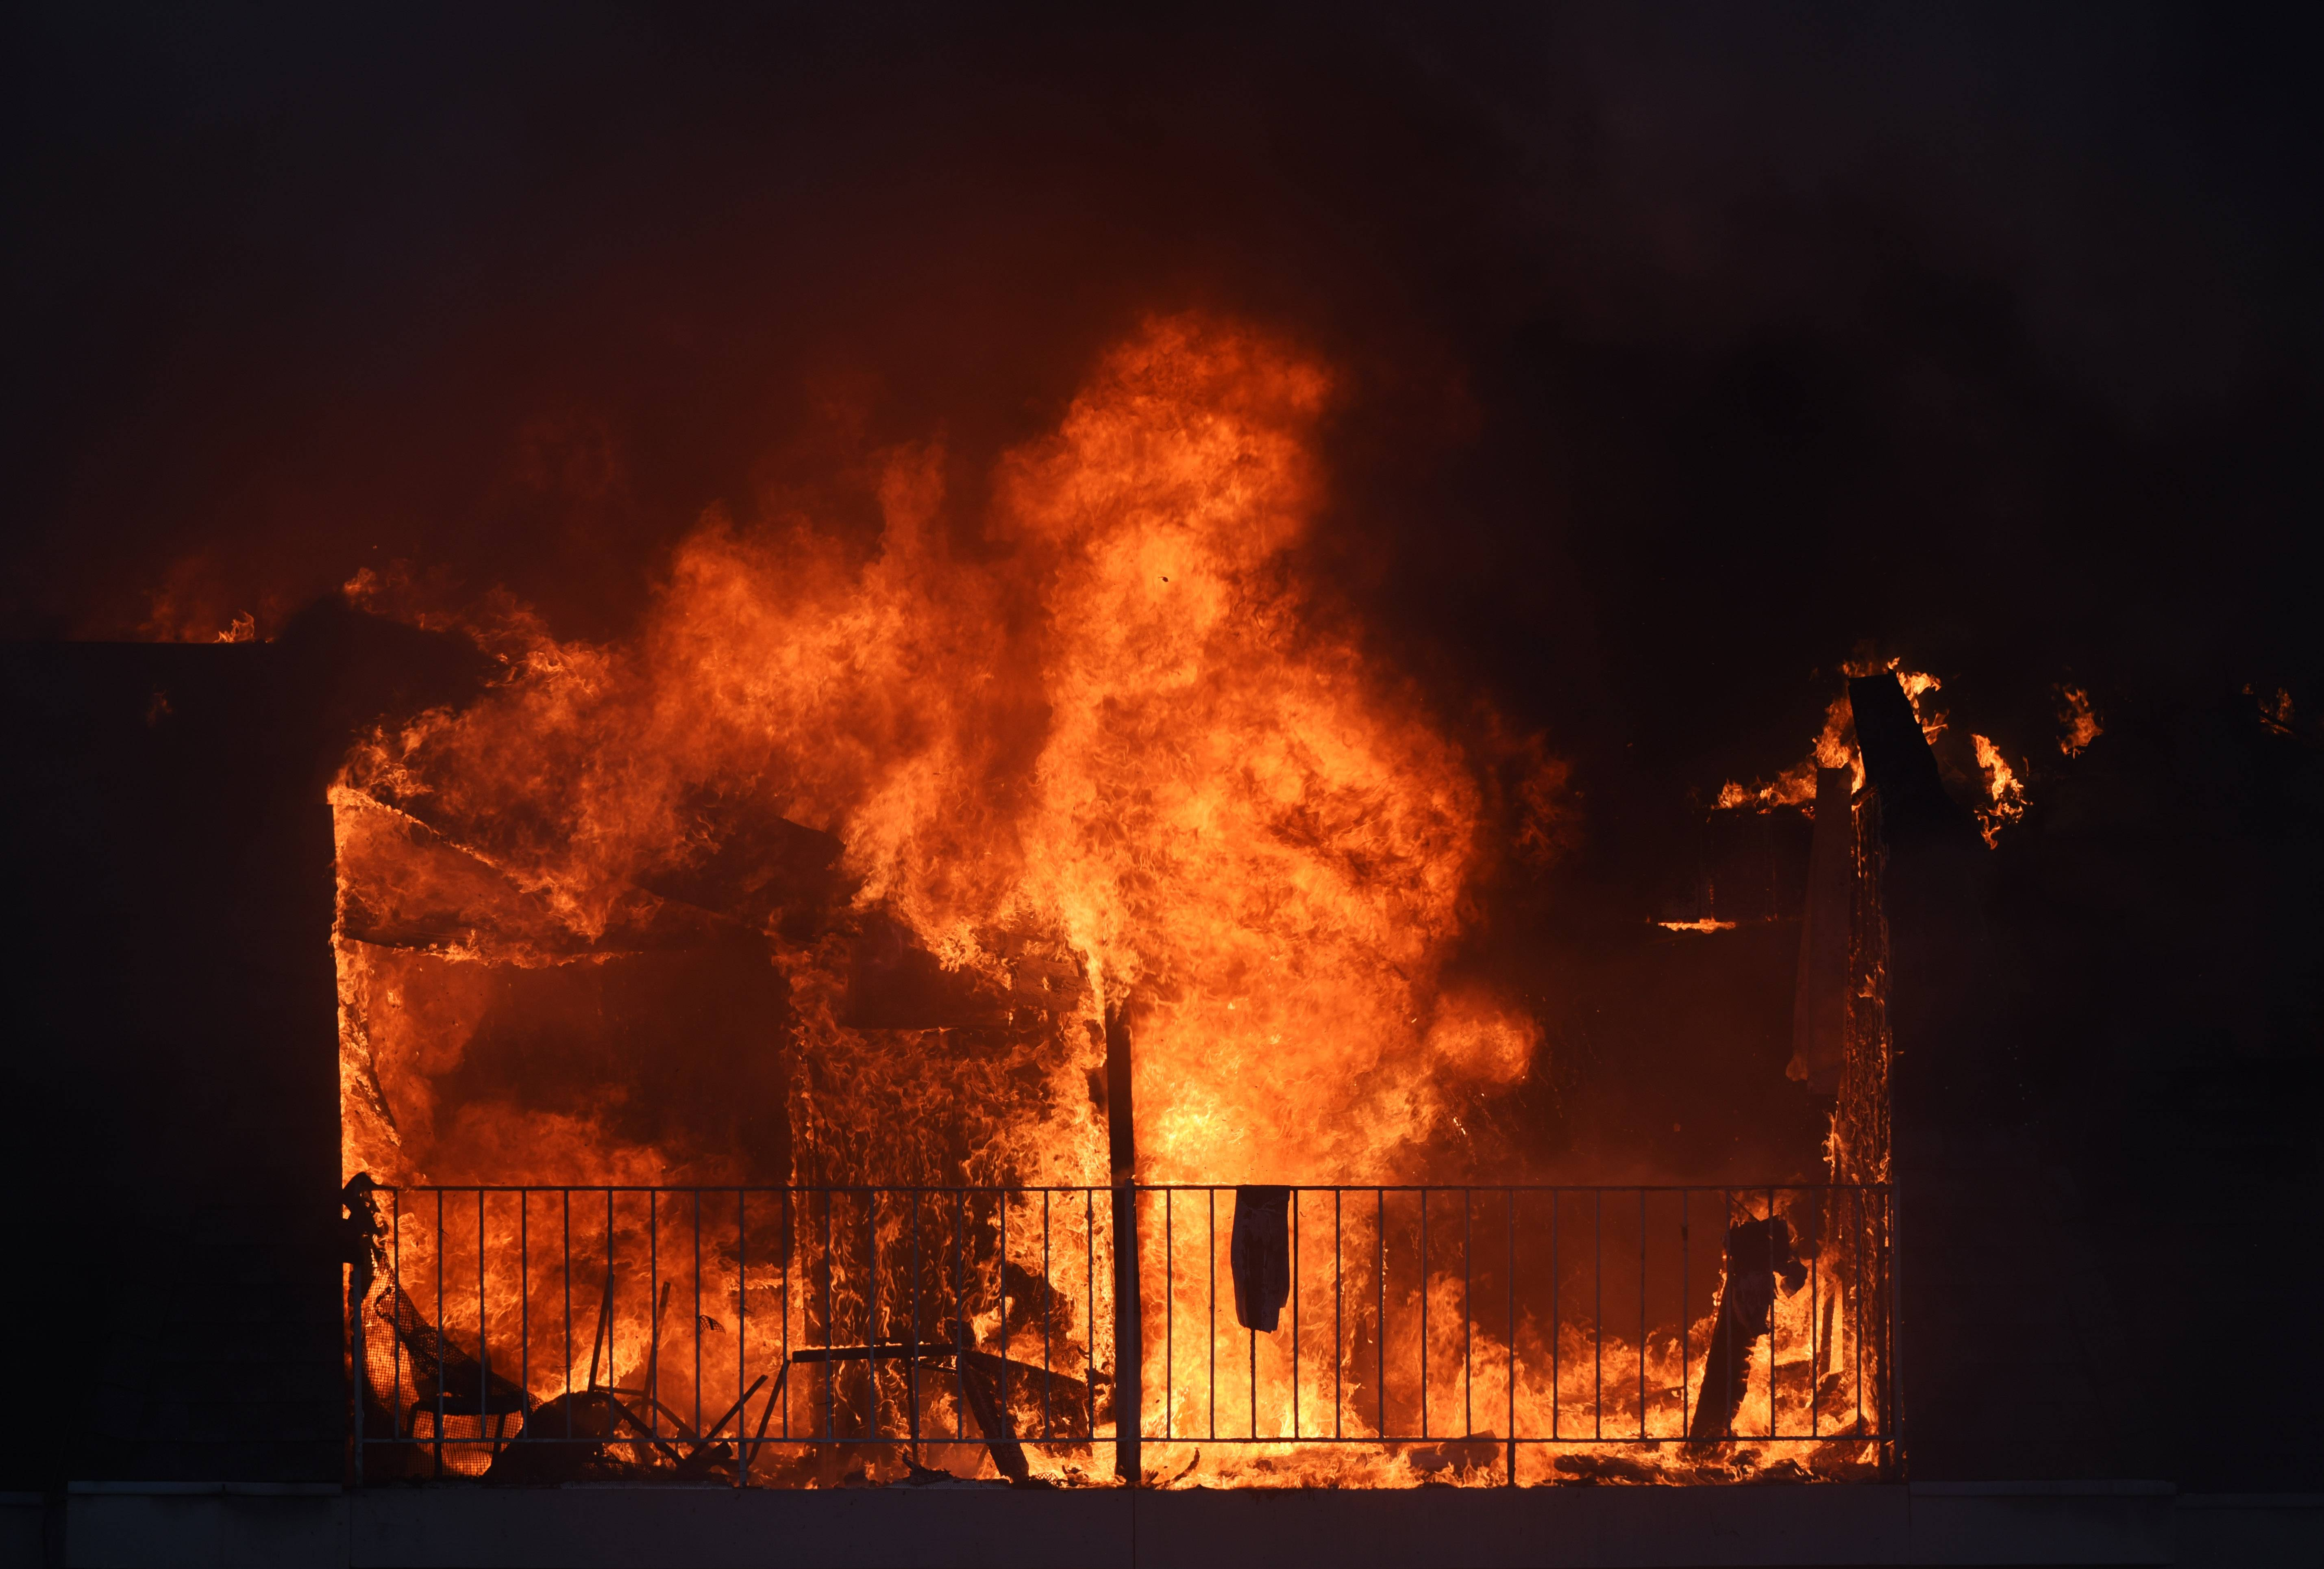 An apartment unit is engulfed in flames as firefighters work to extinguish a blaze at an apartment complex located in the 800 block of McIntosh Ct. in Prospect Heights Wednesday.